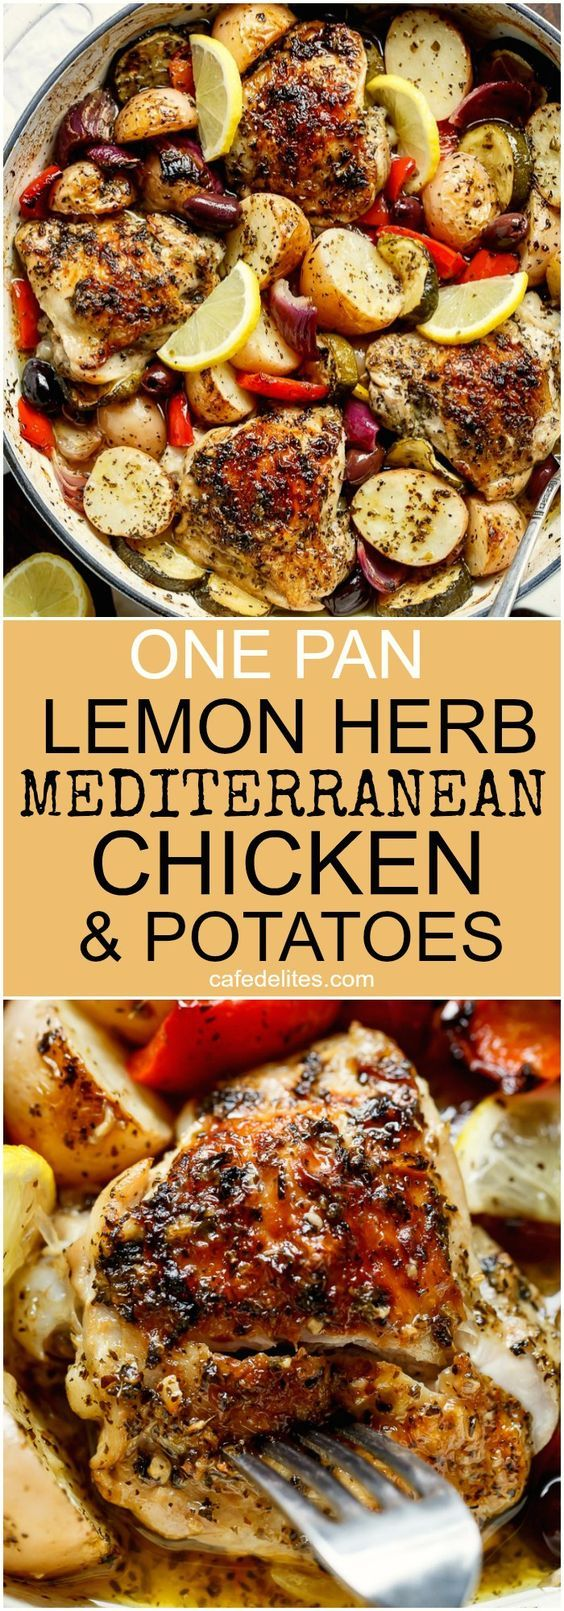 Garlic Lemon Herb Mediterranean Chicken And Potatoes, all made in the ONE PAN for an easy weeknight dinner the whole family will love!